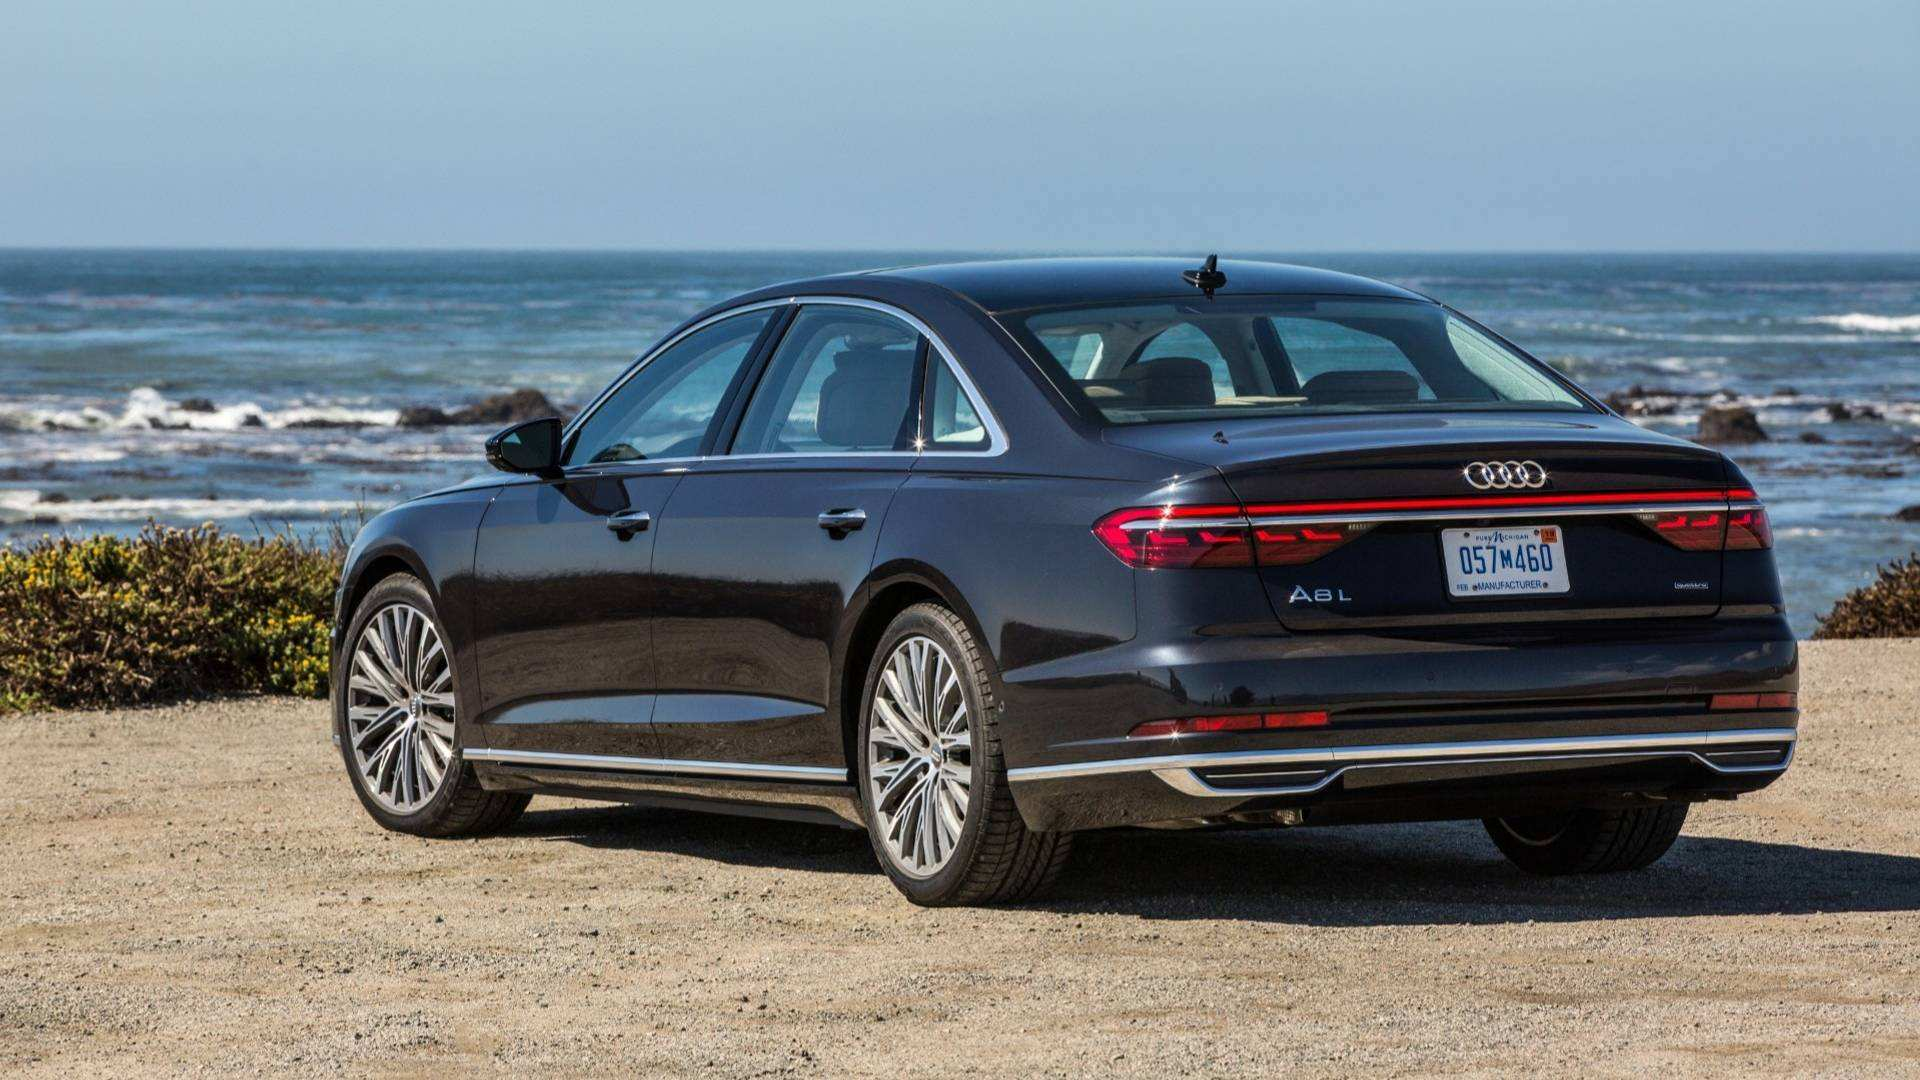 23 Gallery of 2019 Audi A8 Photos Specs and Review with 2019 Audi A8 Photos